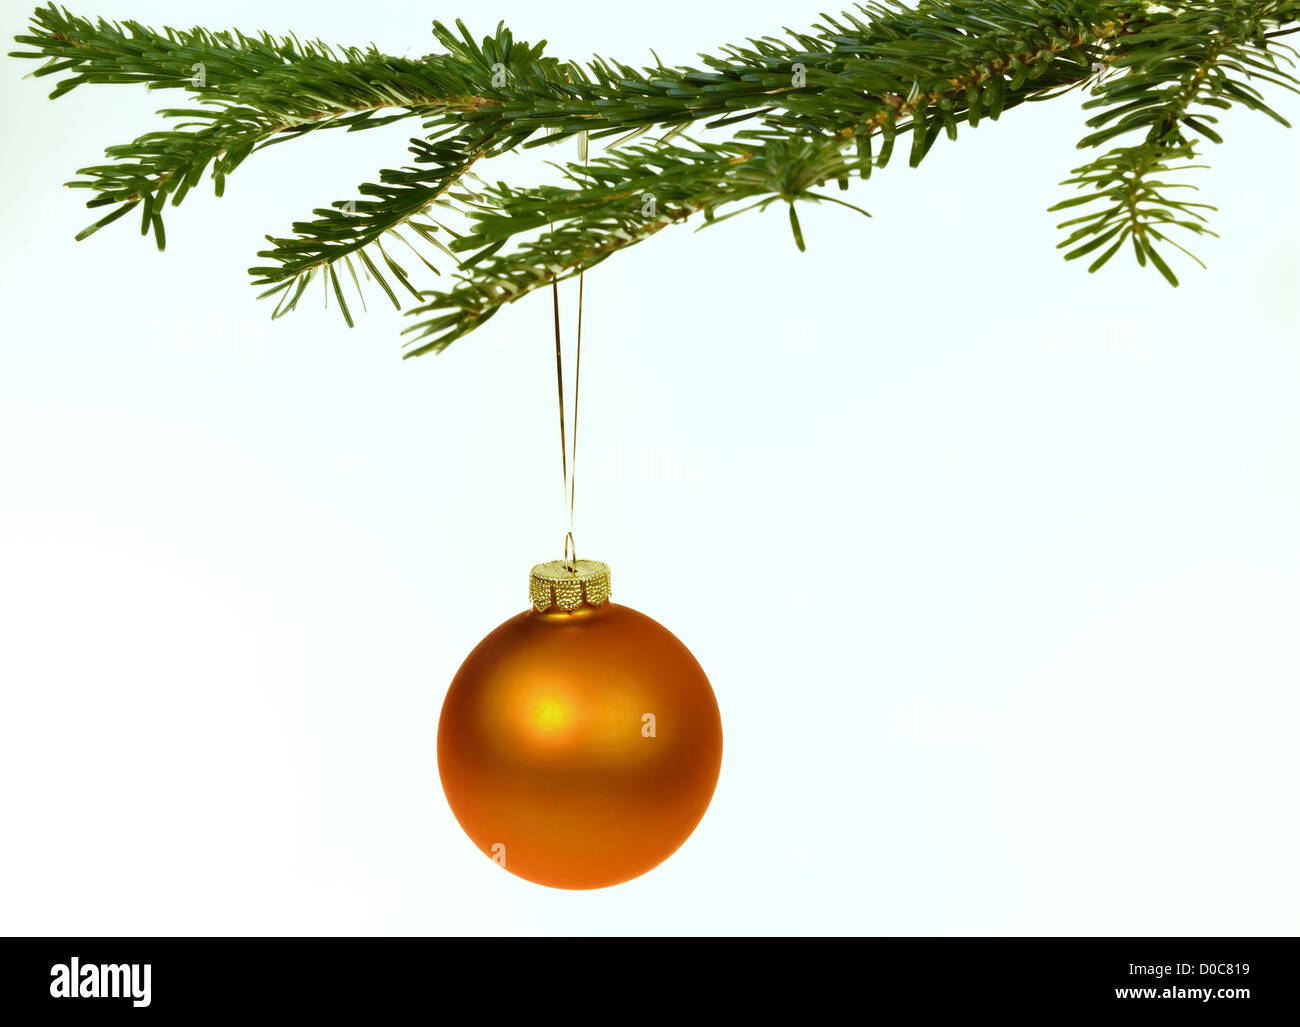 Orange Christmas decorations hanging from a pine branch - isolated on white background - Stock Image